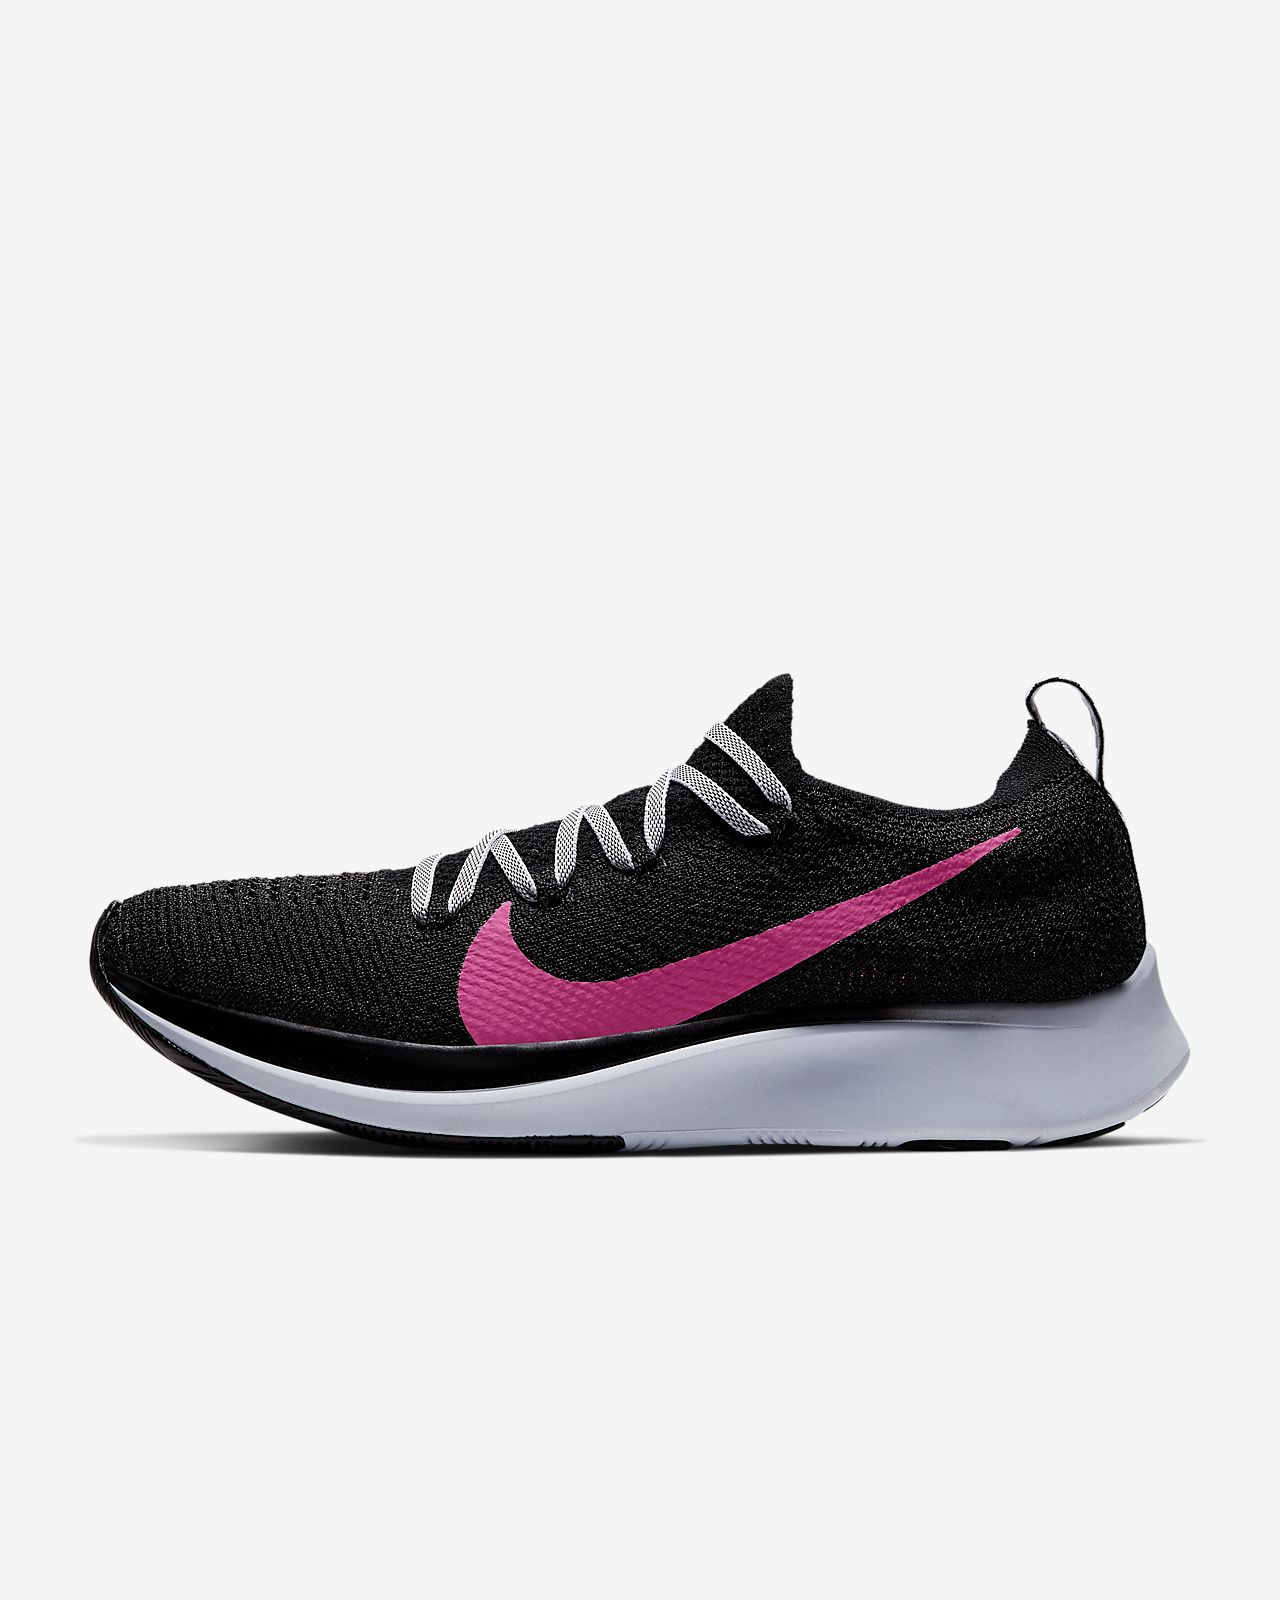 best service 95b50 c6456 ... Nike Zoom Fly Flyknit Women s Running Shoe